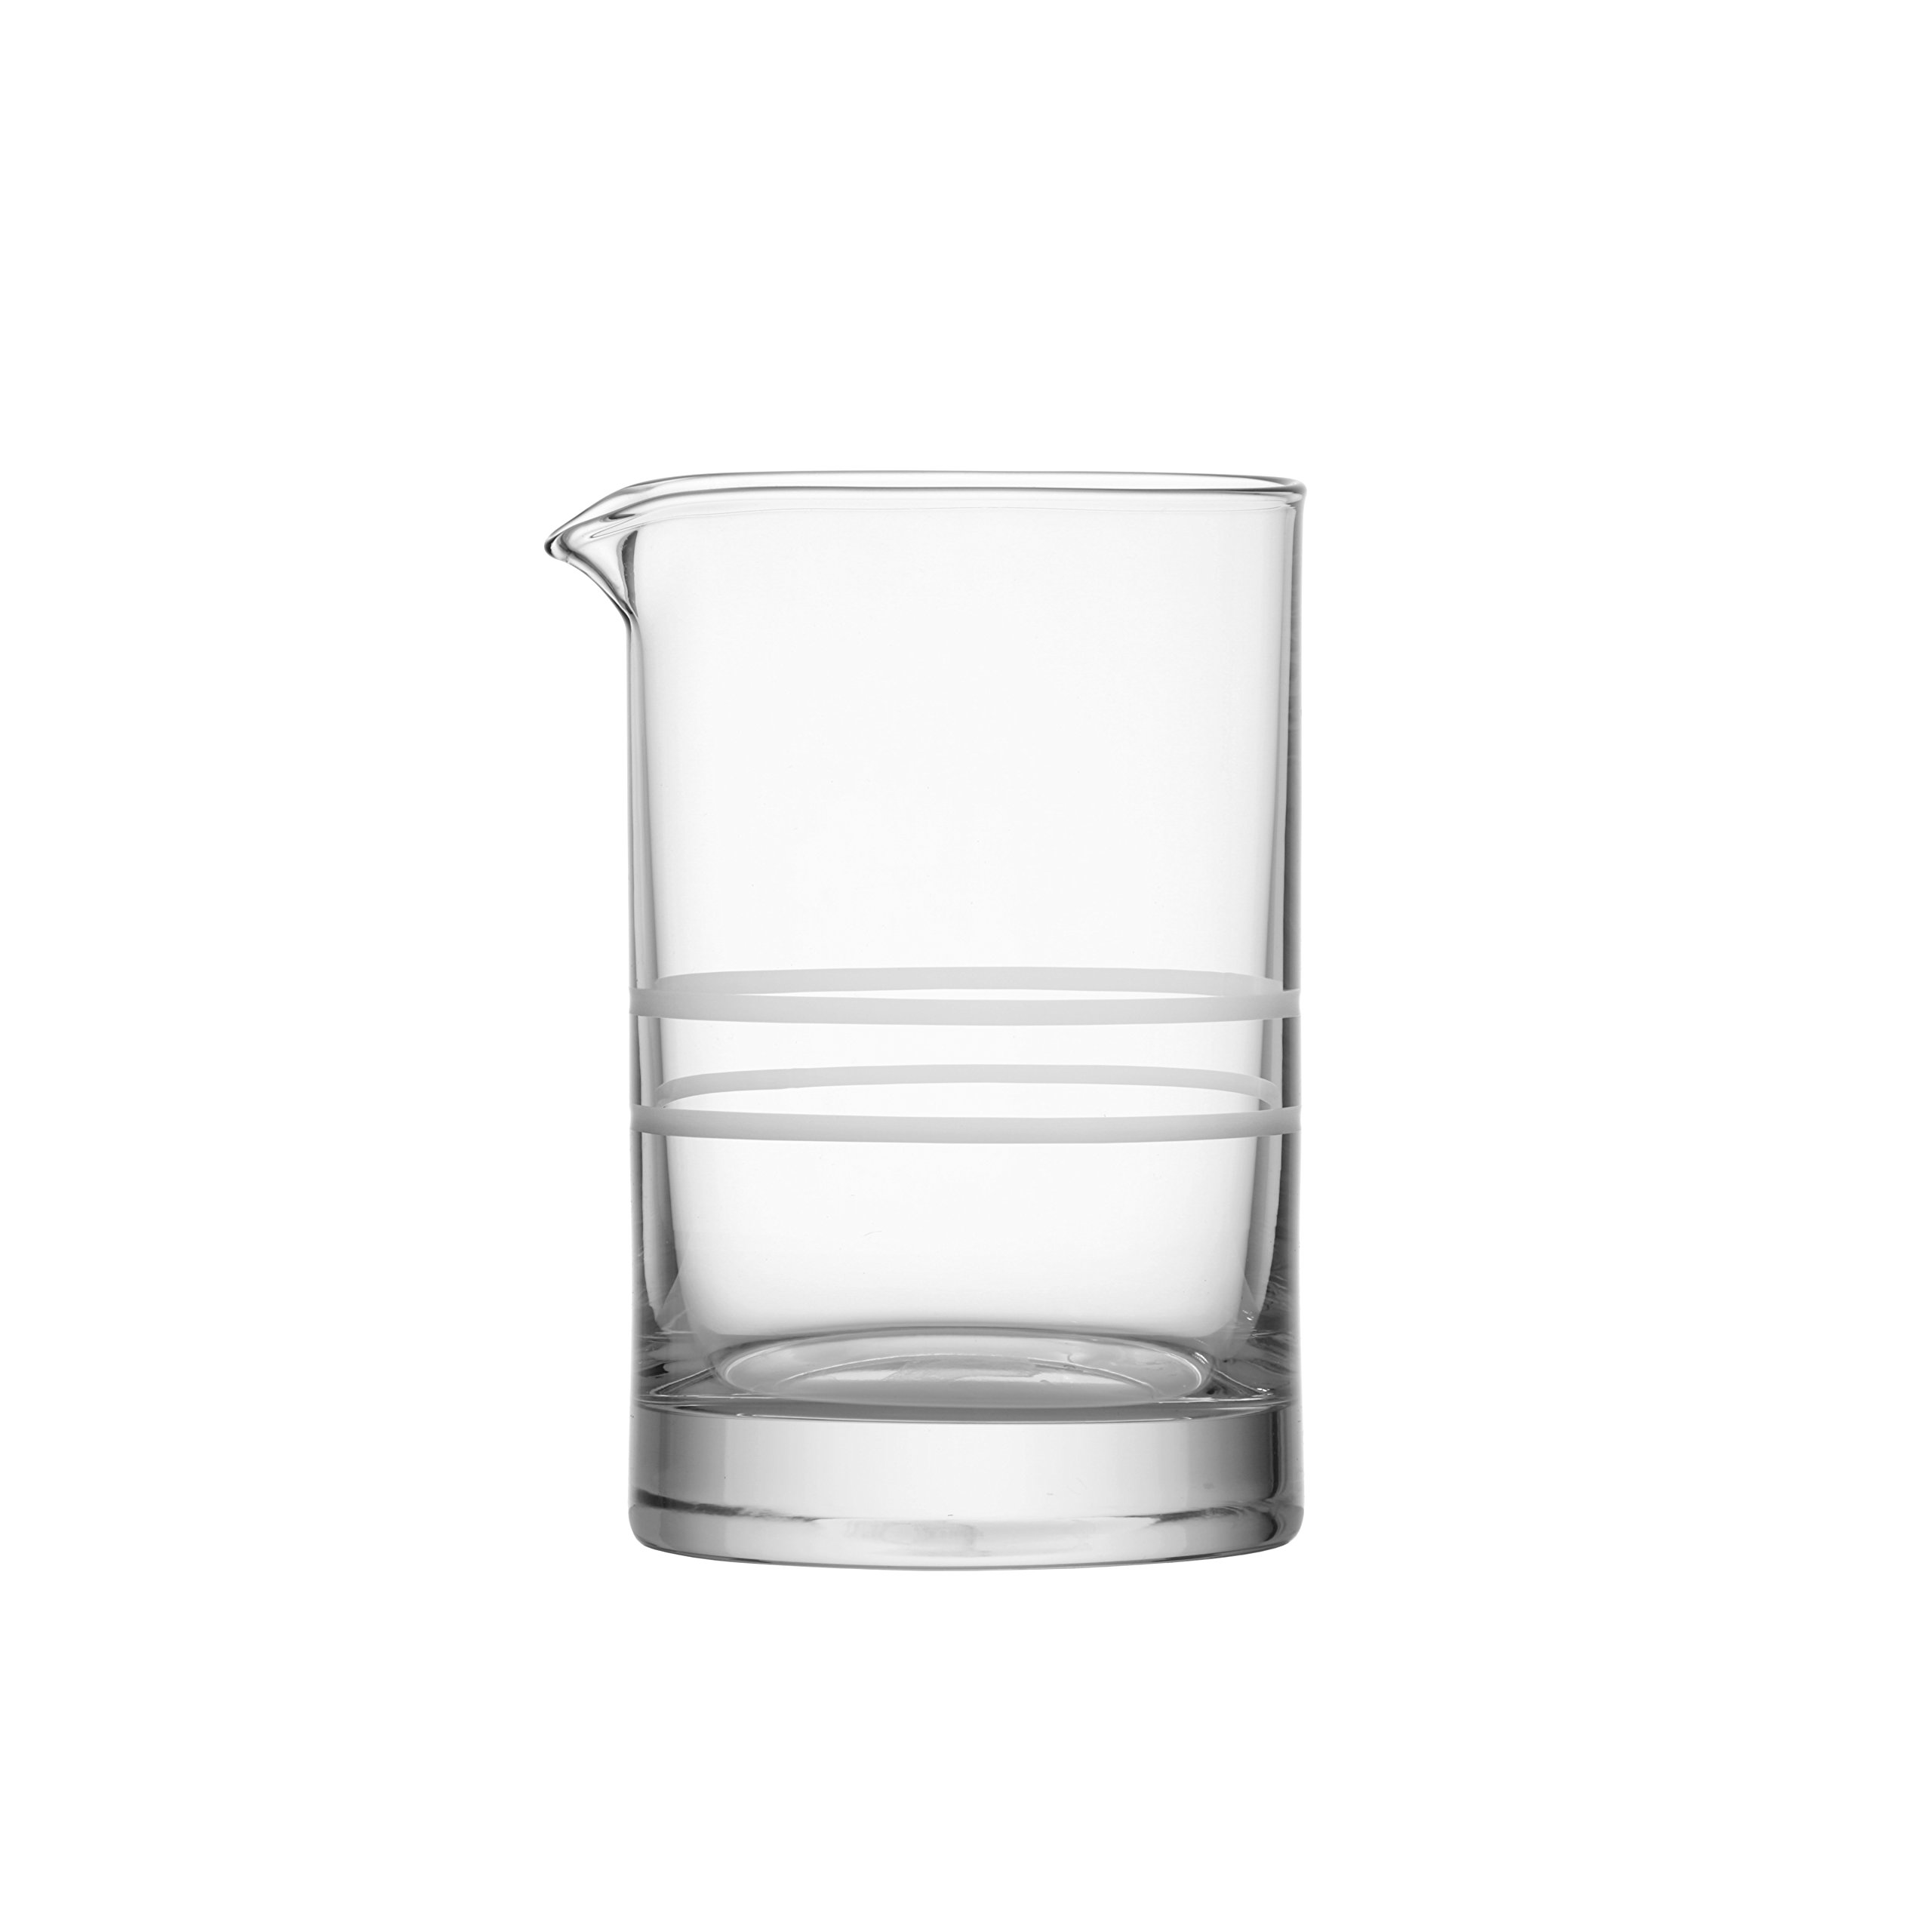 Crafthouse by Fortessa Professional Barware by Charles Joly, Etched Schott Zwiesel Tritan 25.5 oz Cocktail Mixing Glass,